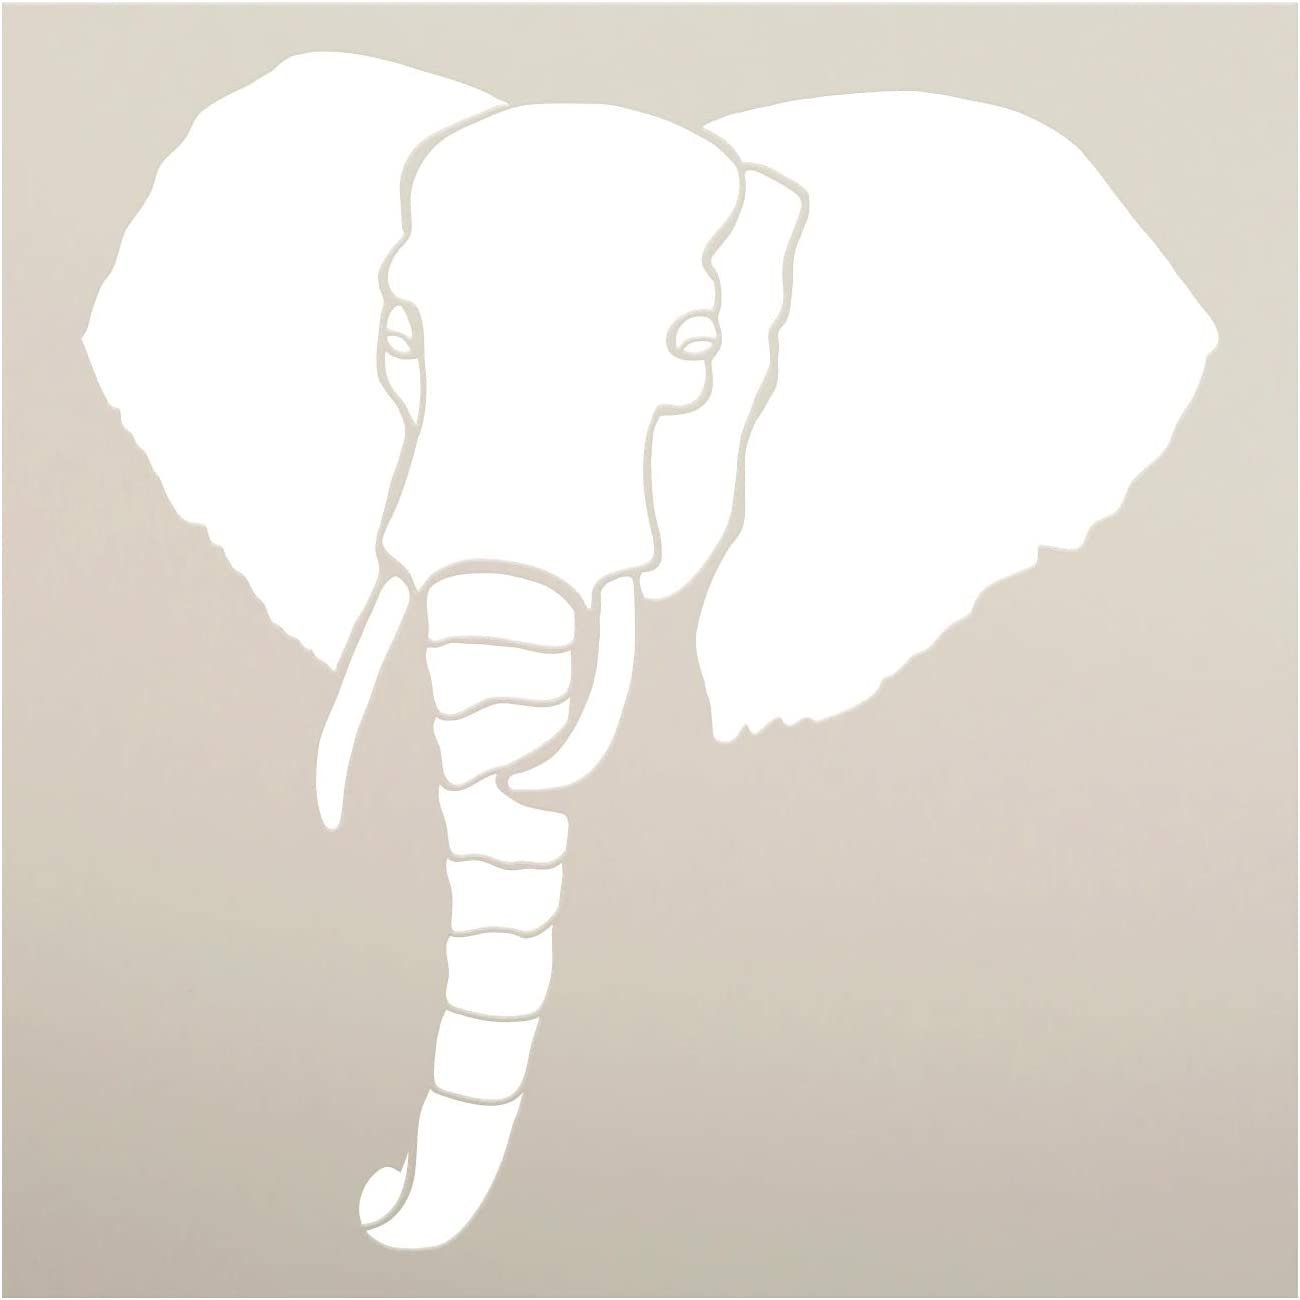 Elephant Silhouette Stencil by StudioR12 | DIY African Animal Lover Home Decor Gift | Craft & Paint Wood Sign | Reusable Mylar Template | Select Size